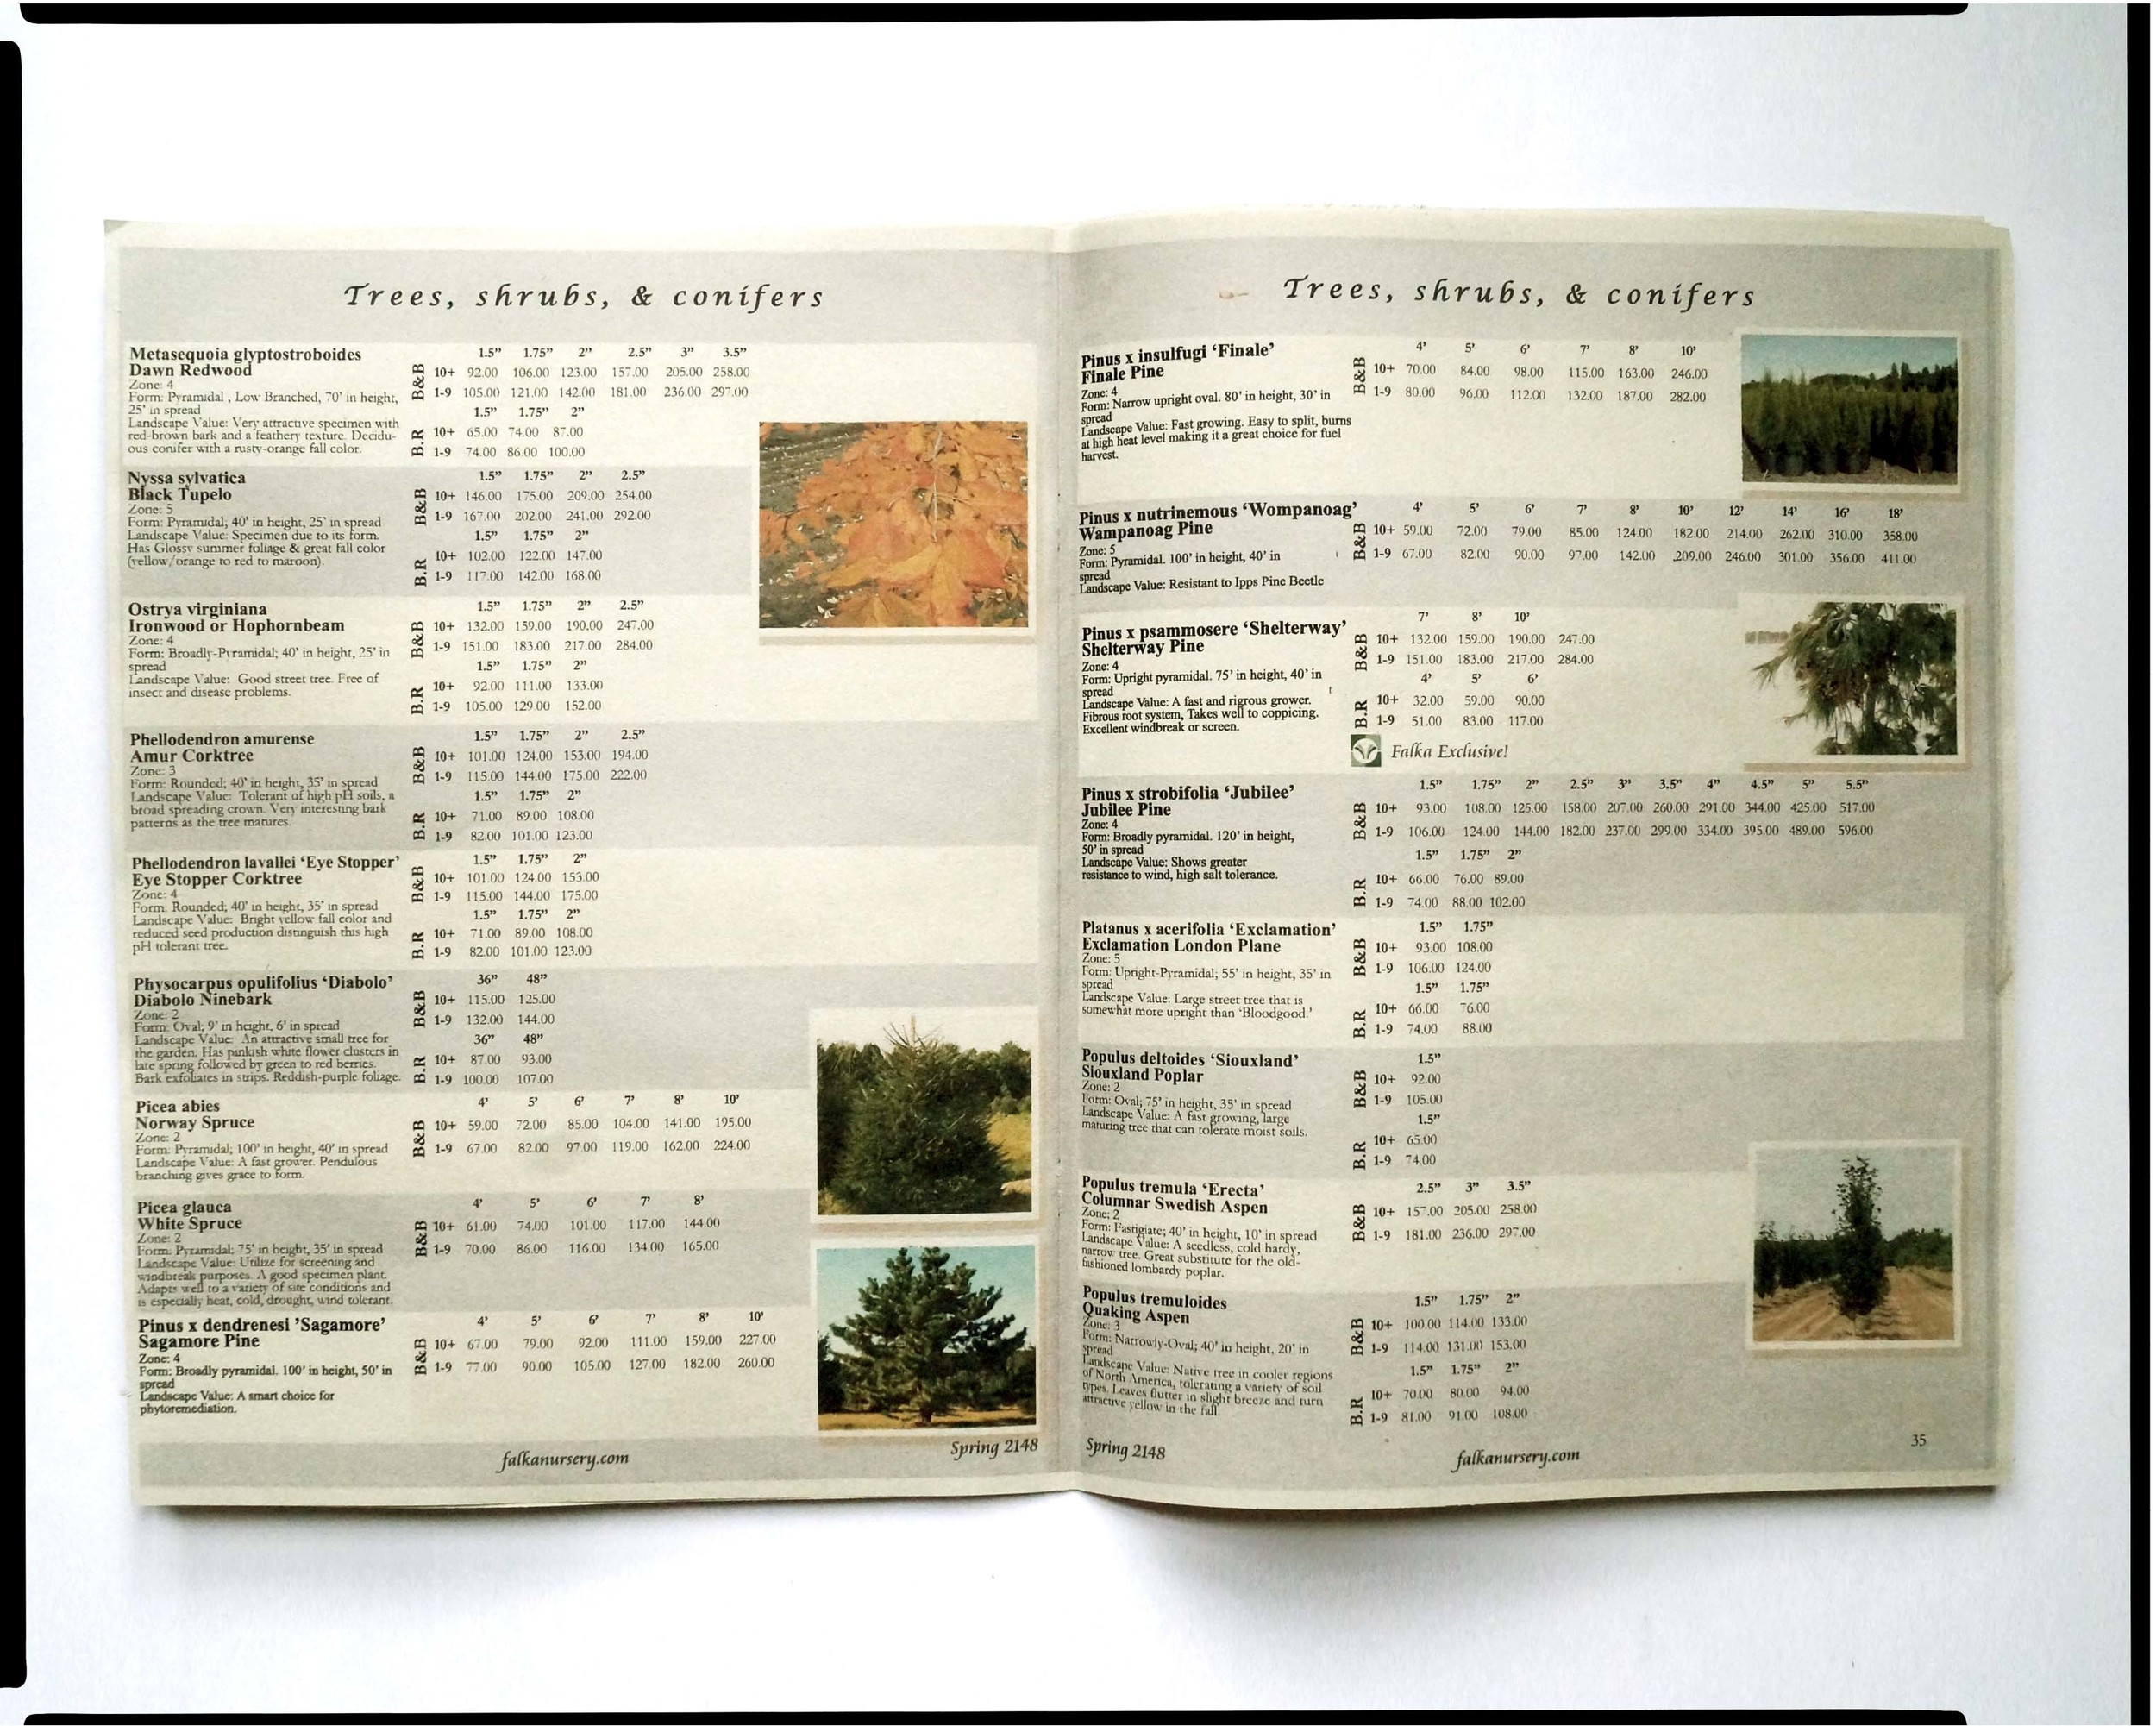 """"""" Falka Selections, Fall 2109. """" Sales catalogue featuring the Sand Authority's hybrid cultivars, Pinus x nutrinemous """"Wampanoag"""", Pinus x psammosere """"Shelterway"""", and Pinus x strobifolia """"Jubilee""""; Falka Nursery Canada, 2109."""